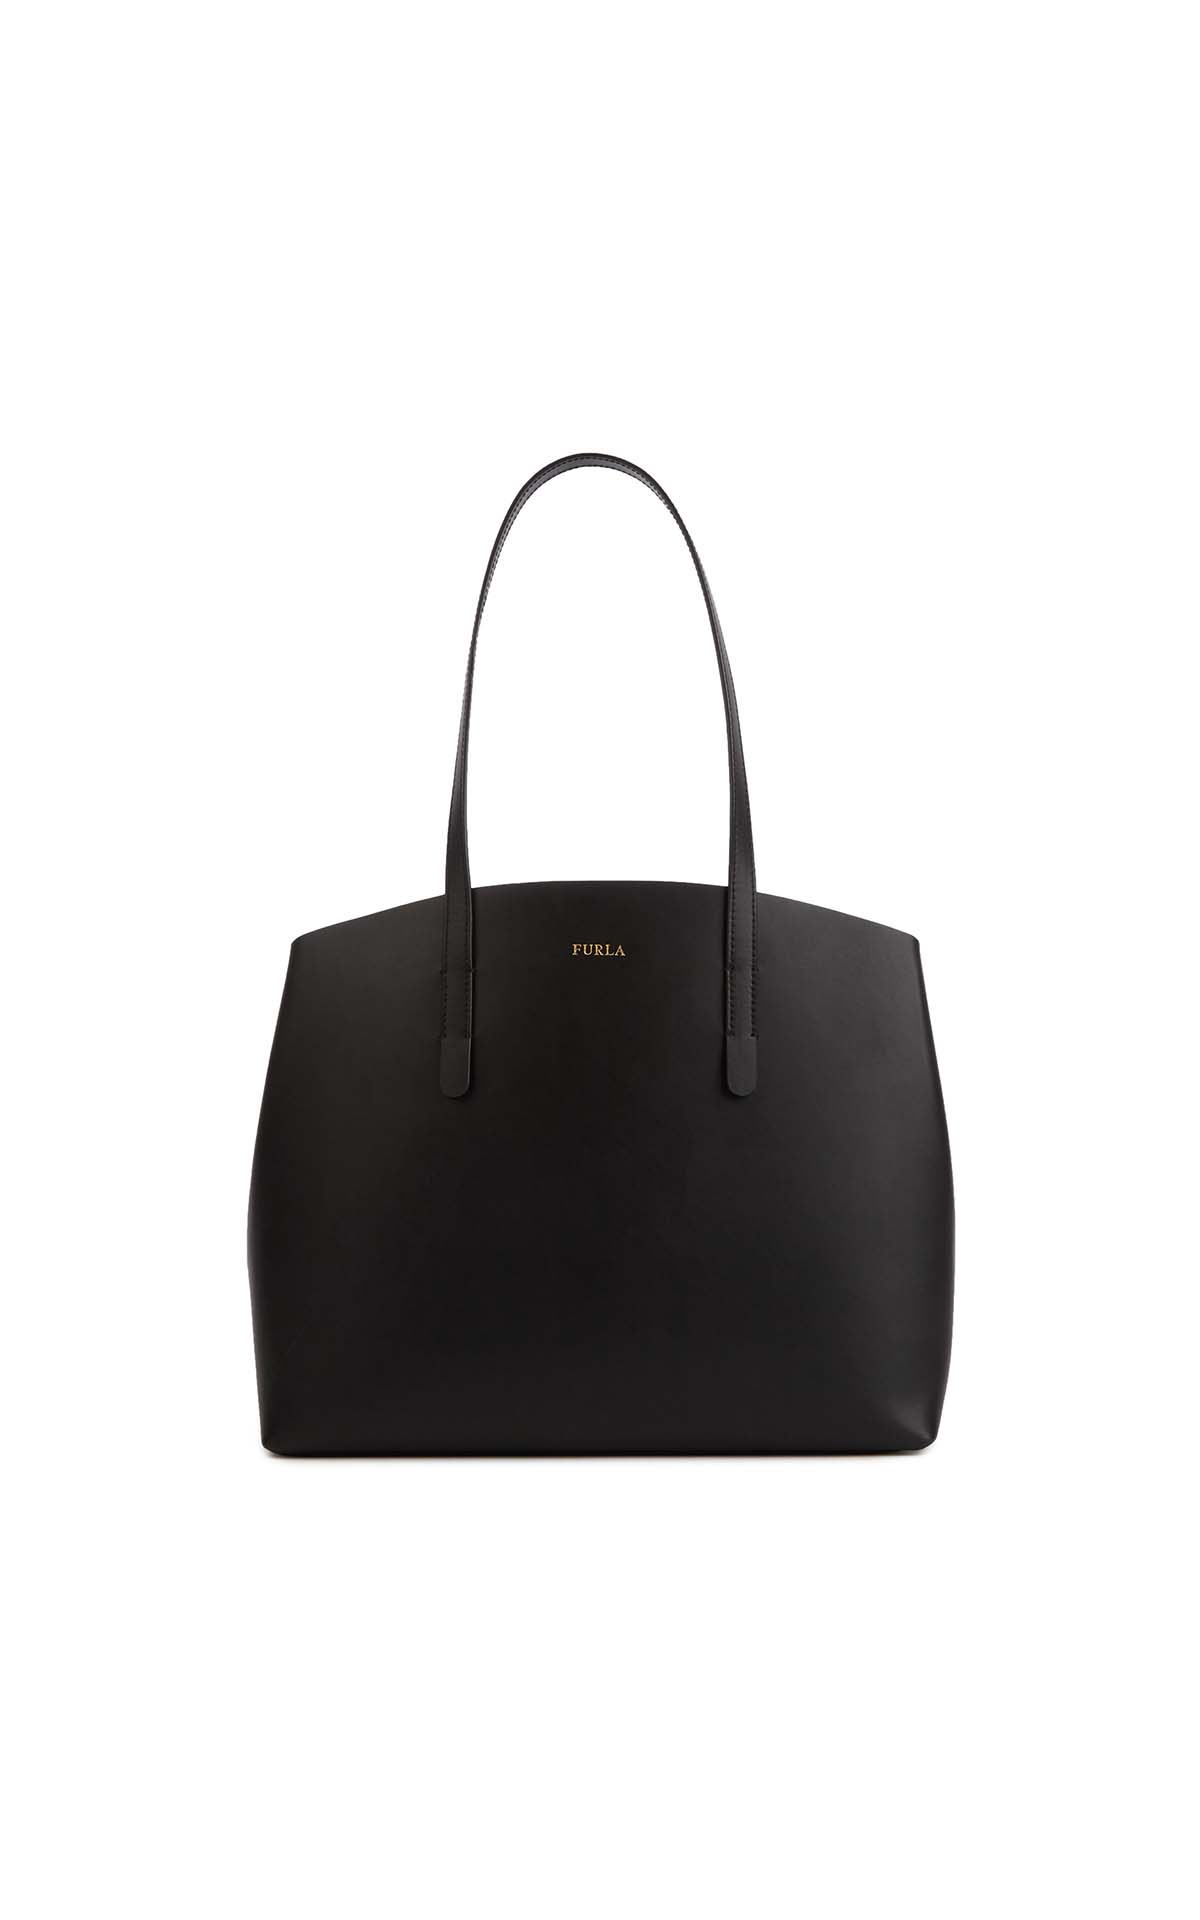 Furla Paradise Medium Tote Bag Black at The Bicester Village Shopping Collection